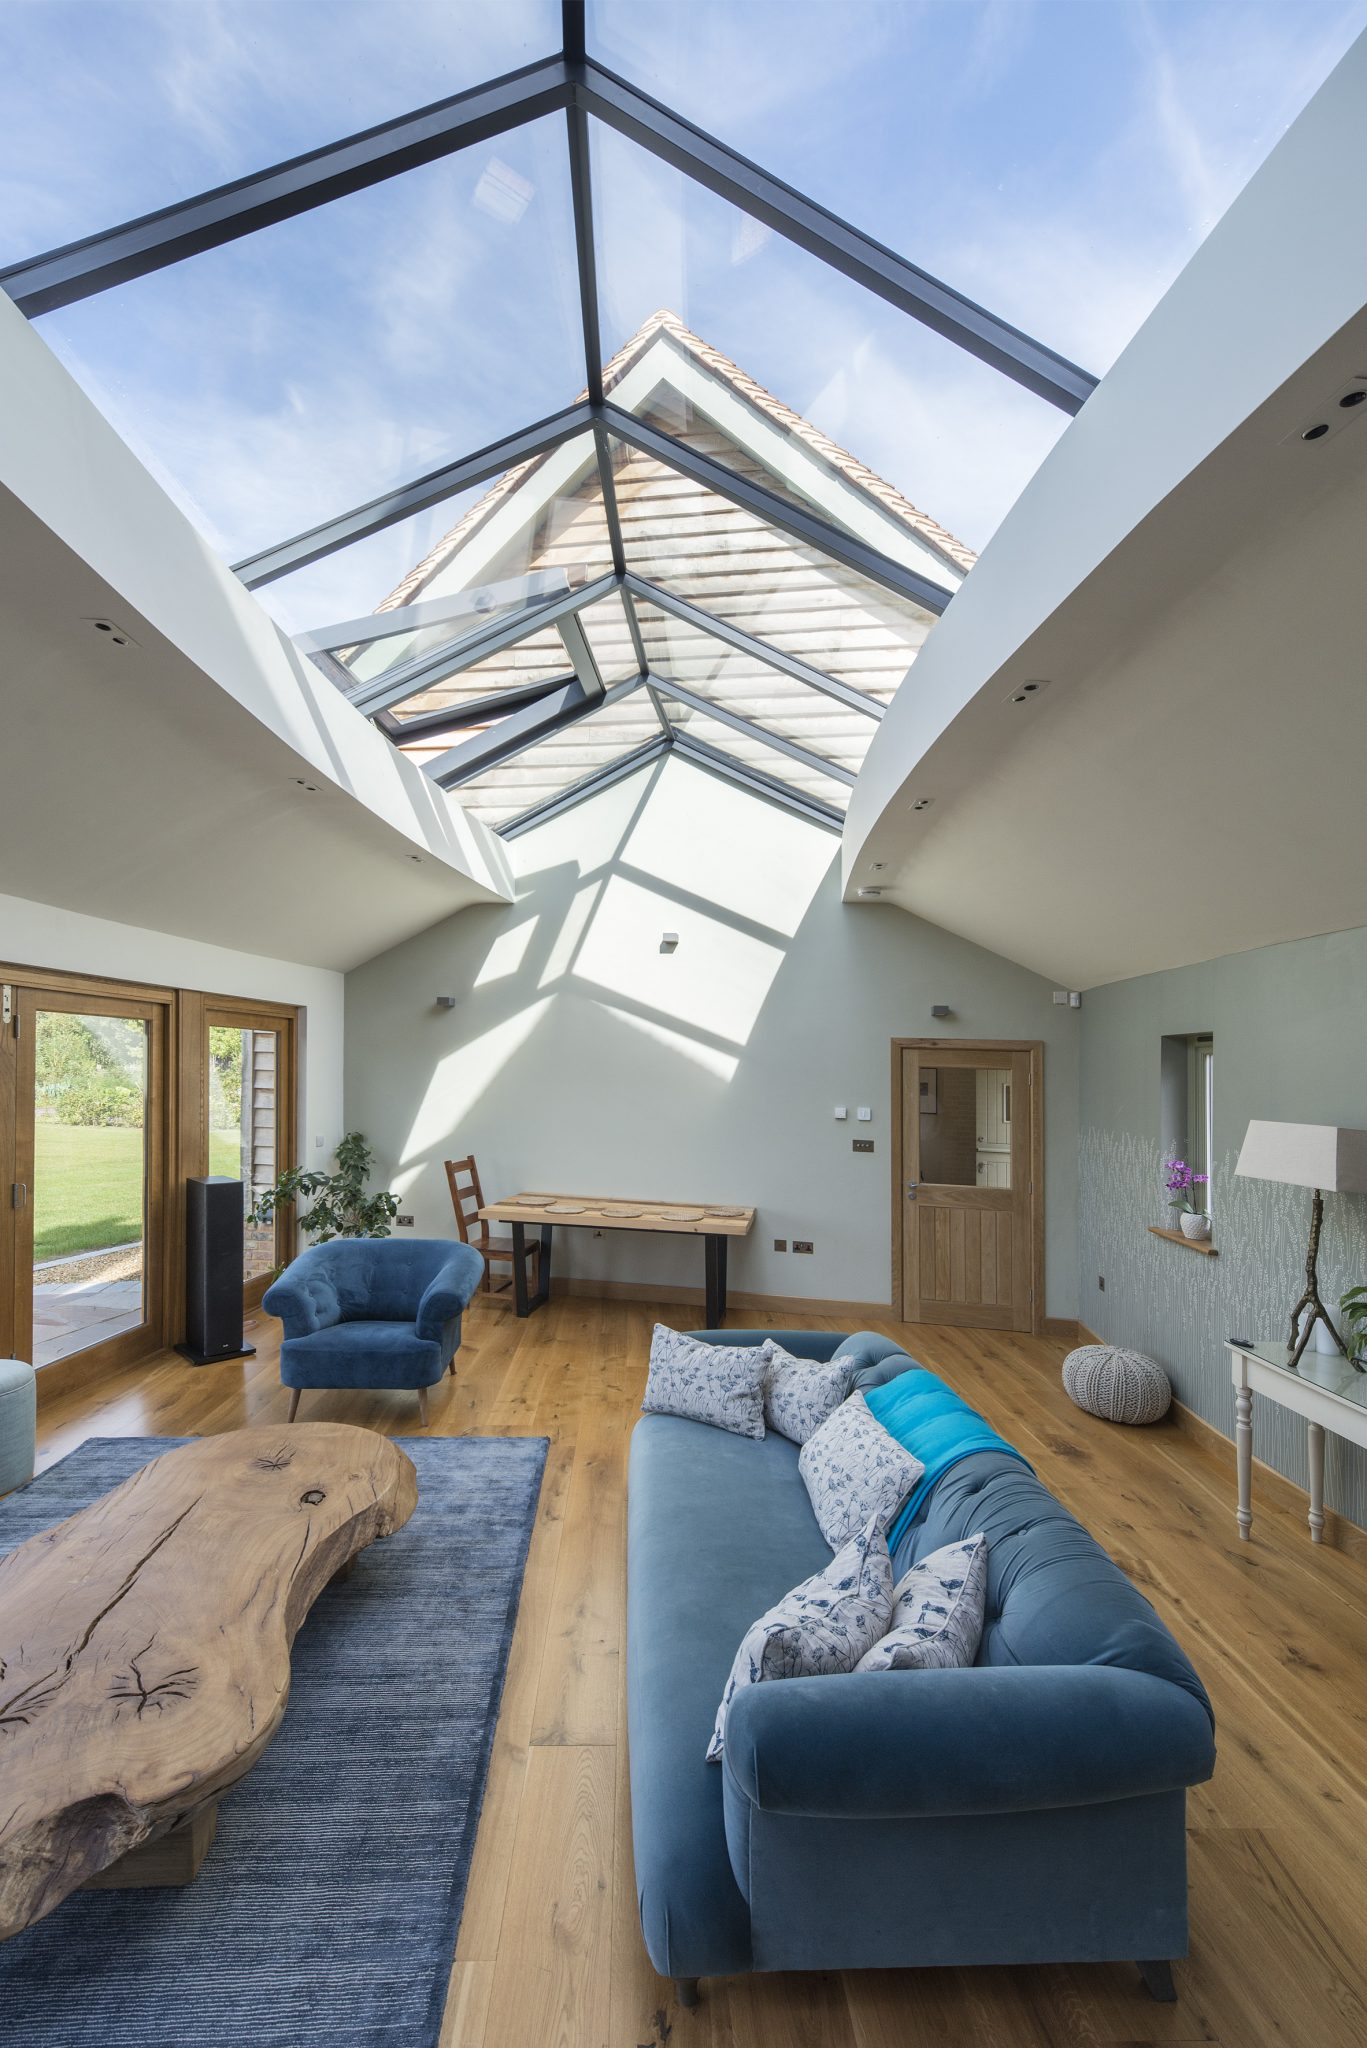 Bespoke Multi-panel rooflight with fixed and opening sections